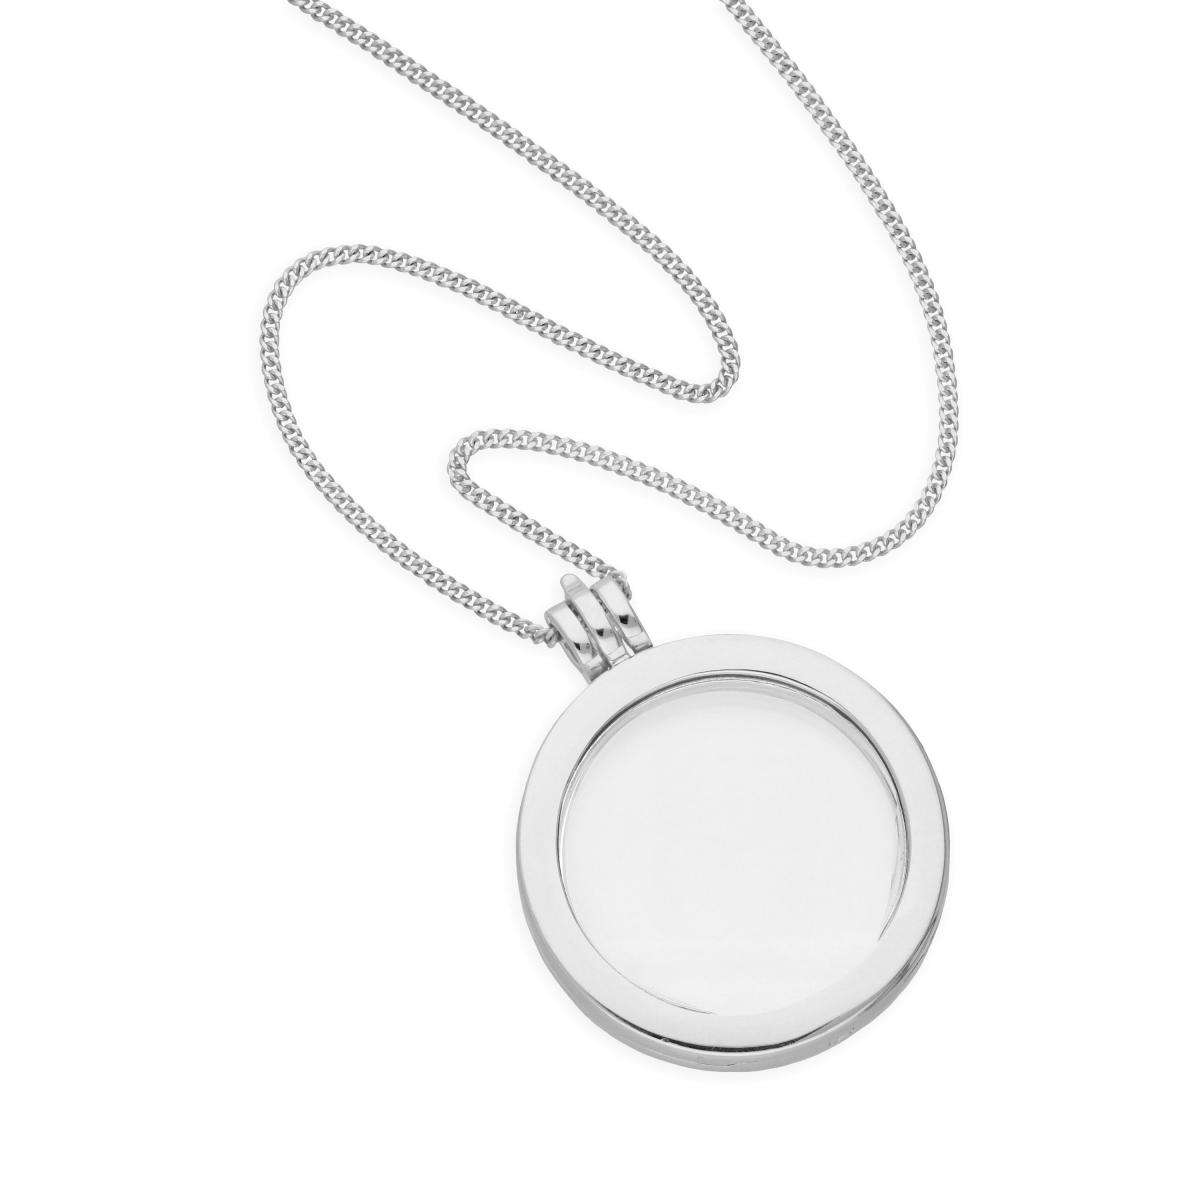 Alterative image for Large Sterling Silver Round Floating Charm Locket on Chain 16 - 24 Inches